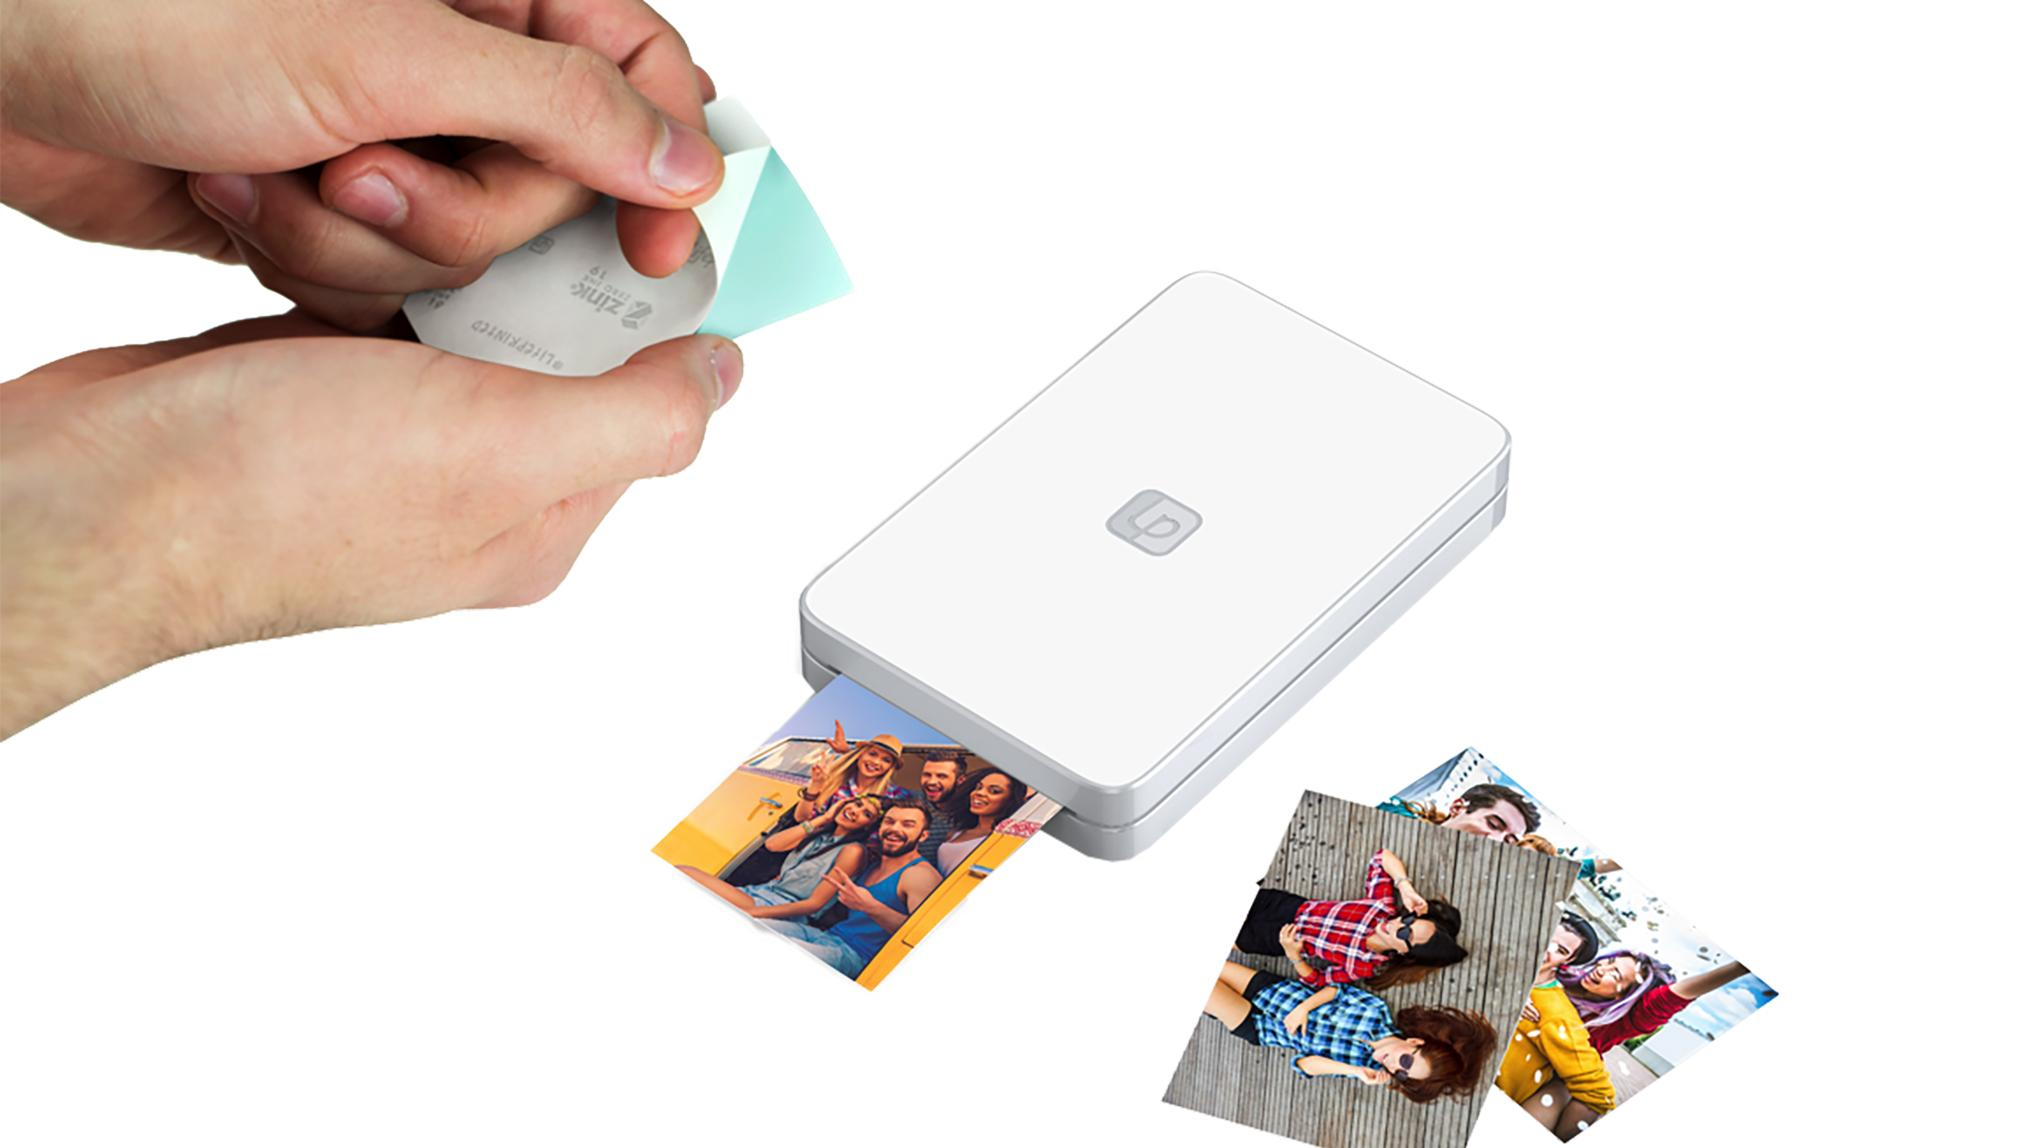 Verizon's Lifeprint Photo Printer is an easy and ink-free way to print your favorite photos and videos from your phone using Bluetooth.{ }(Photo courtesy of Verizon)